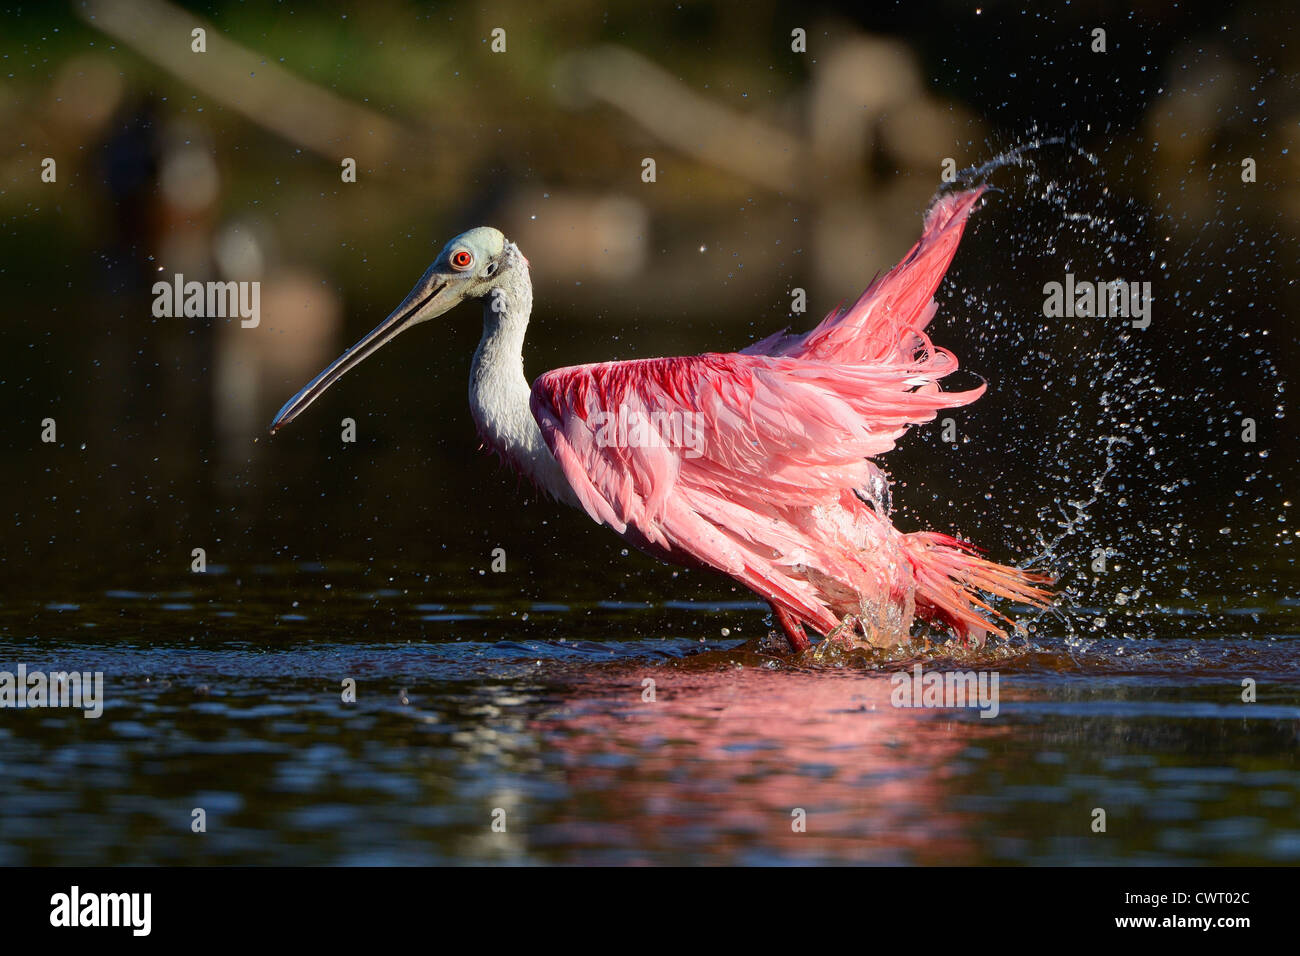 Roseate Spoonbill bathing Stock Photo